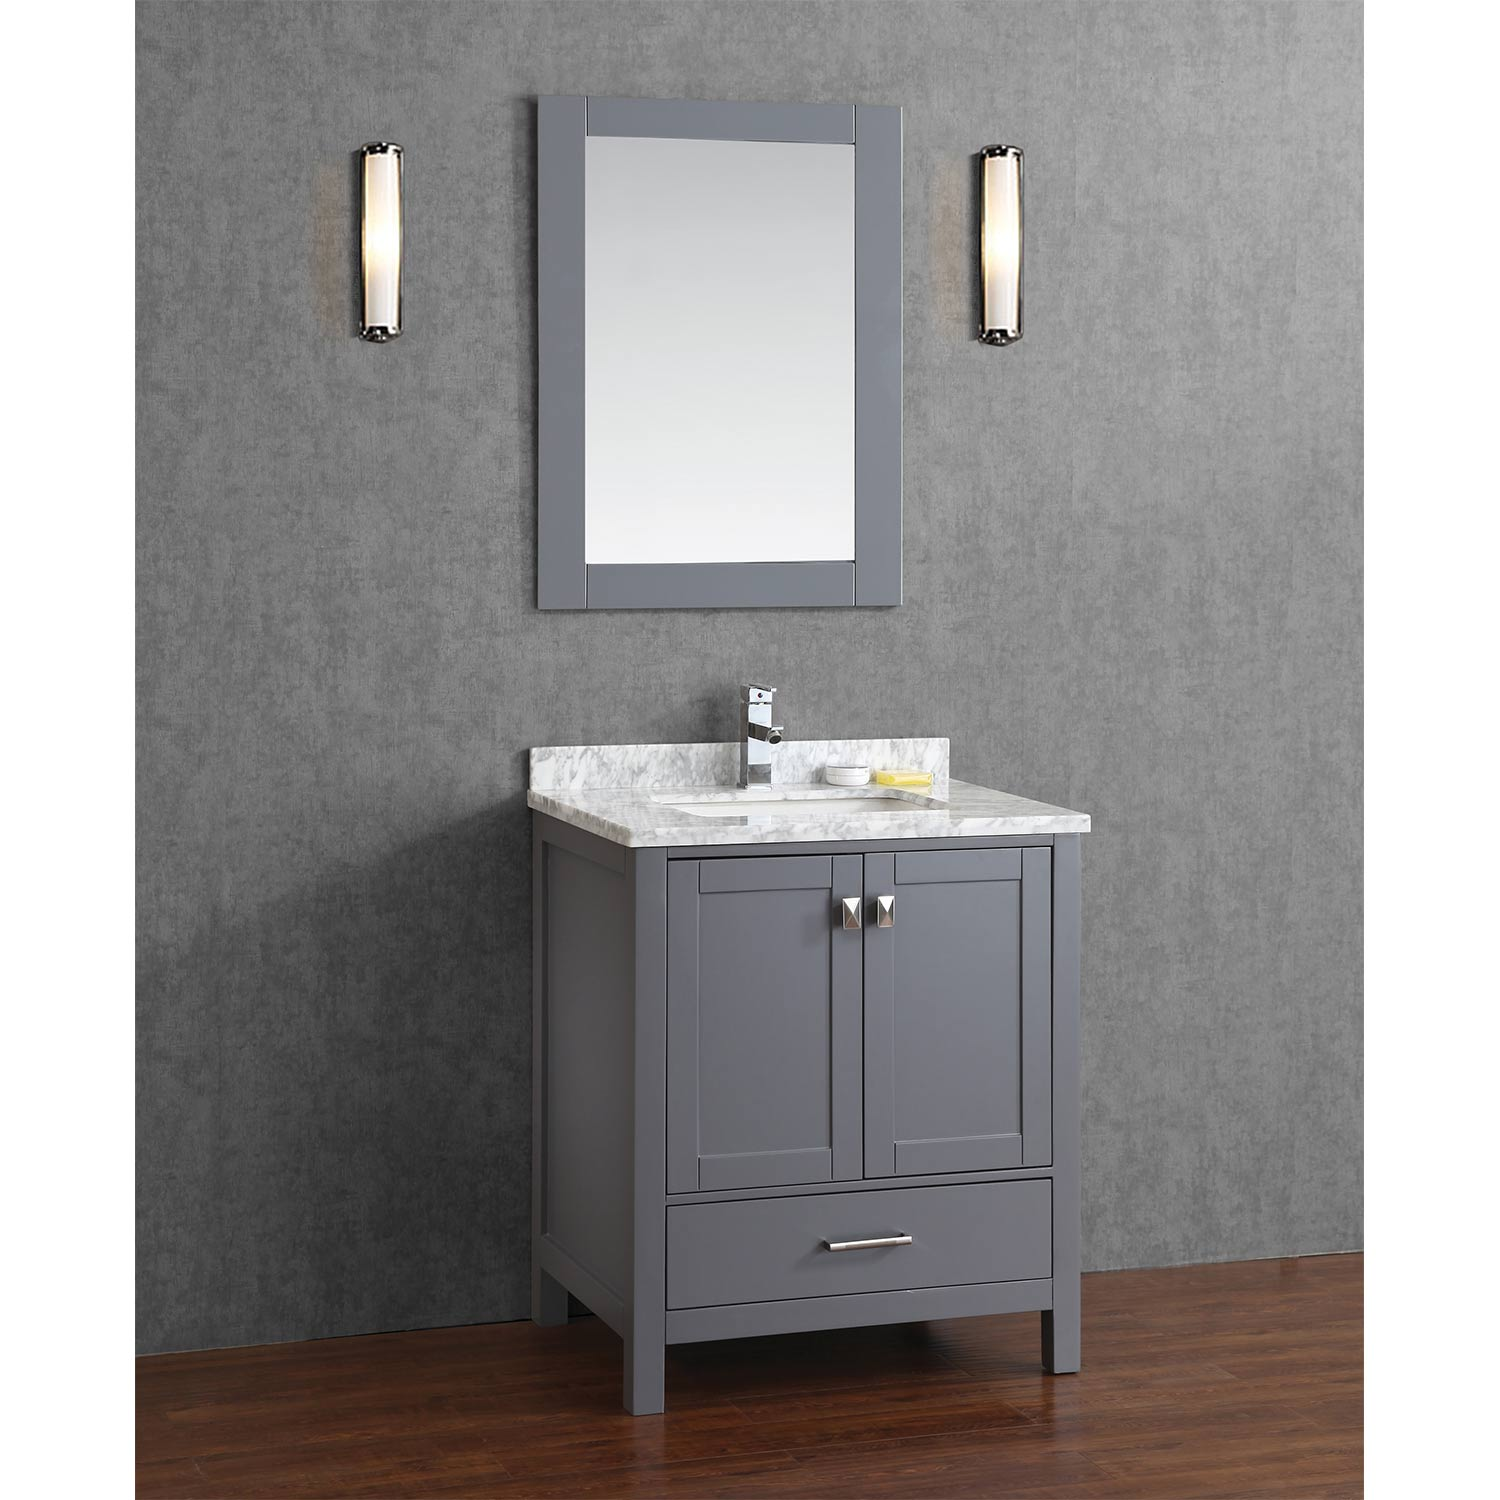 Buy vincent 30 inch solid wood double bathroom vanity in charcoal grey hm 13001 30 wmsq cg Bathroom cabinets gray